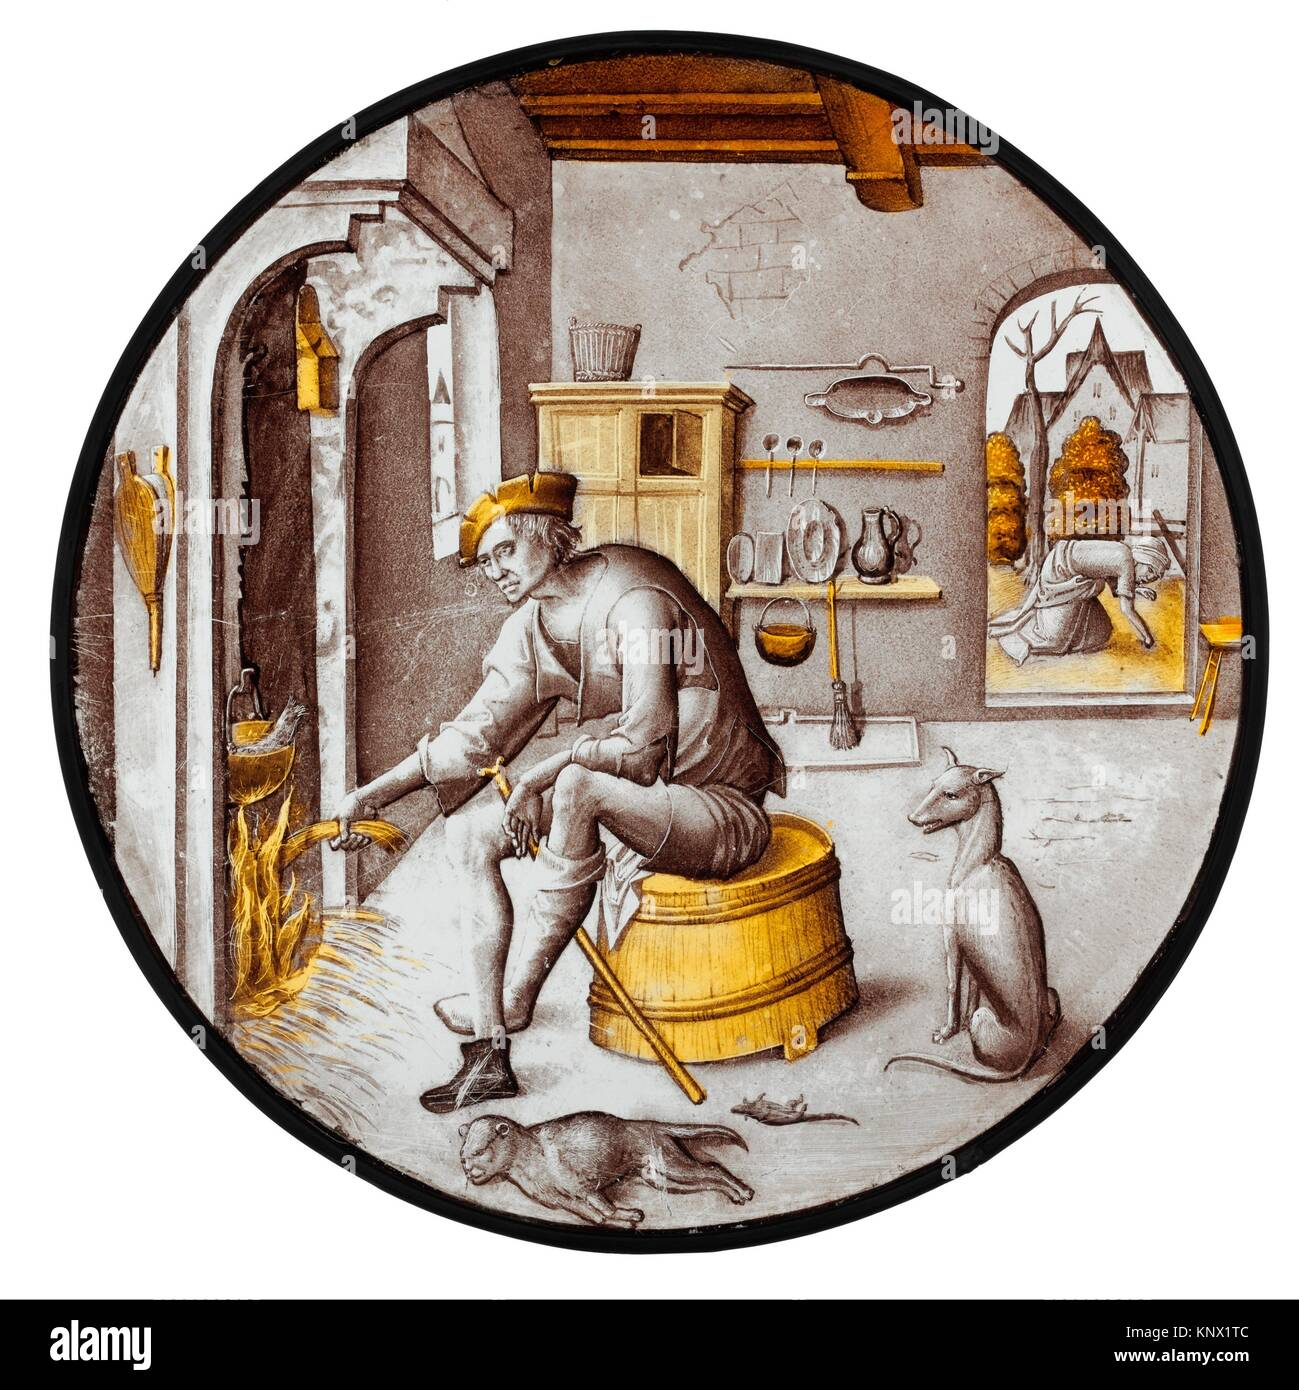 Sorgheloos (Carefree) in Poverty. Date: 1510-20; Culture: Netherlandish; Medium: Colorless glass, vitreous paint - Stock Image